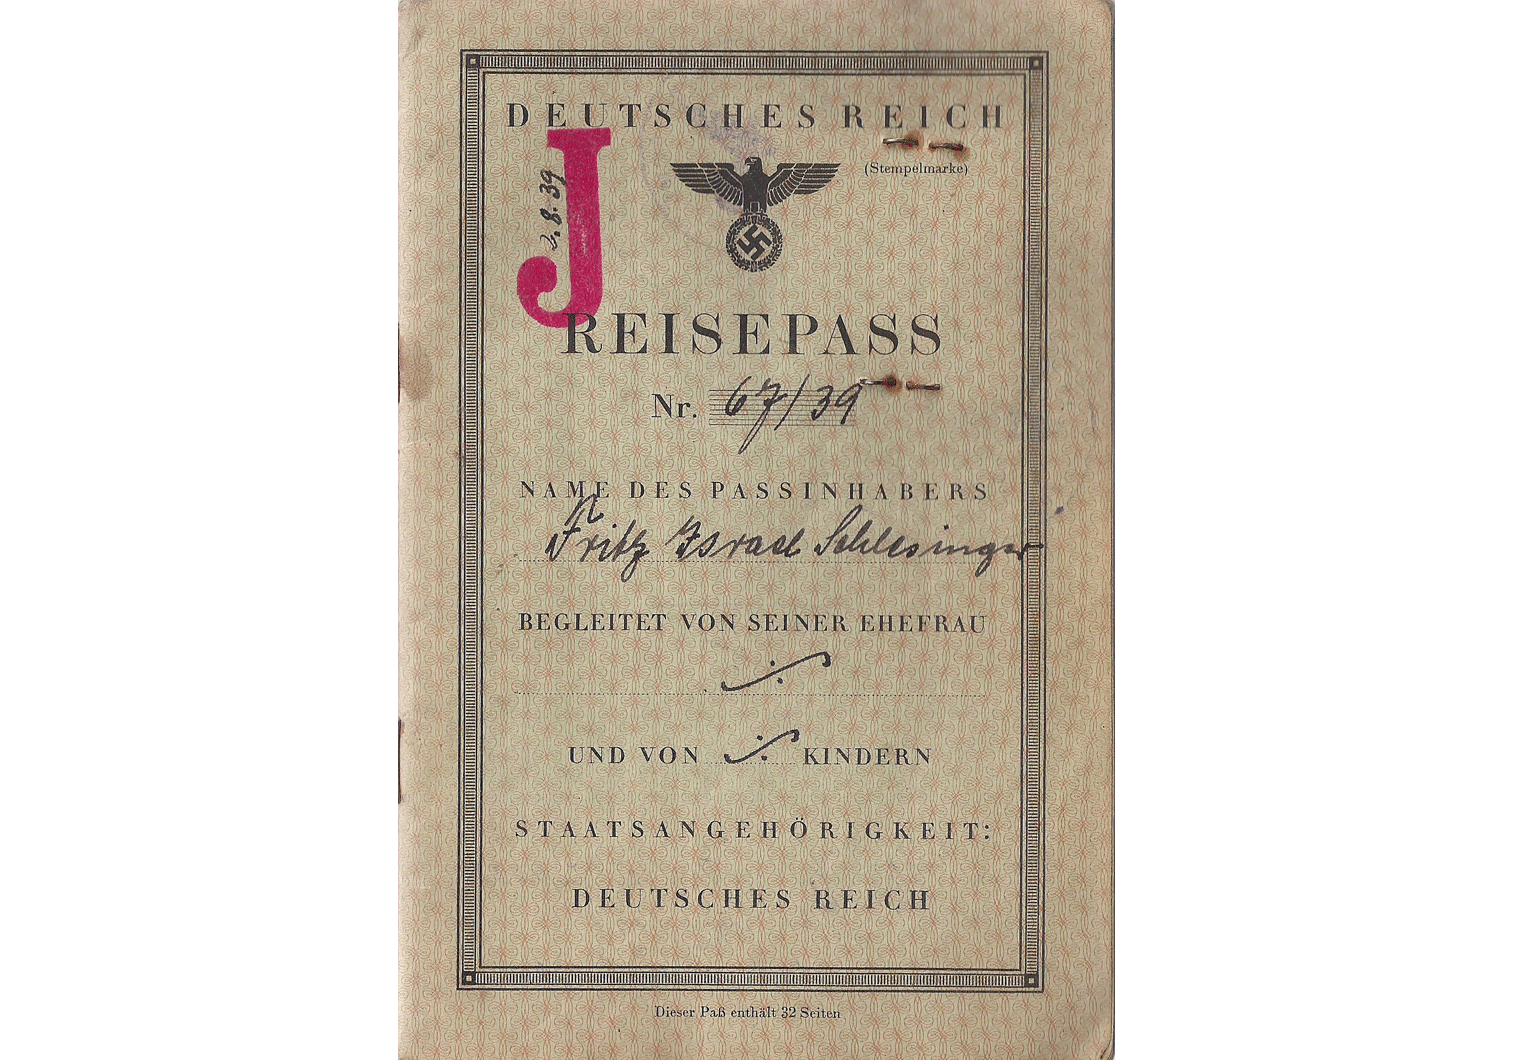 WW2 German J stamped passport